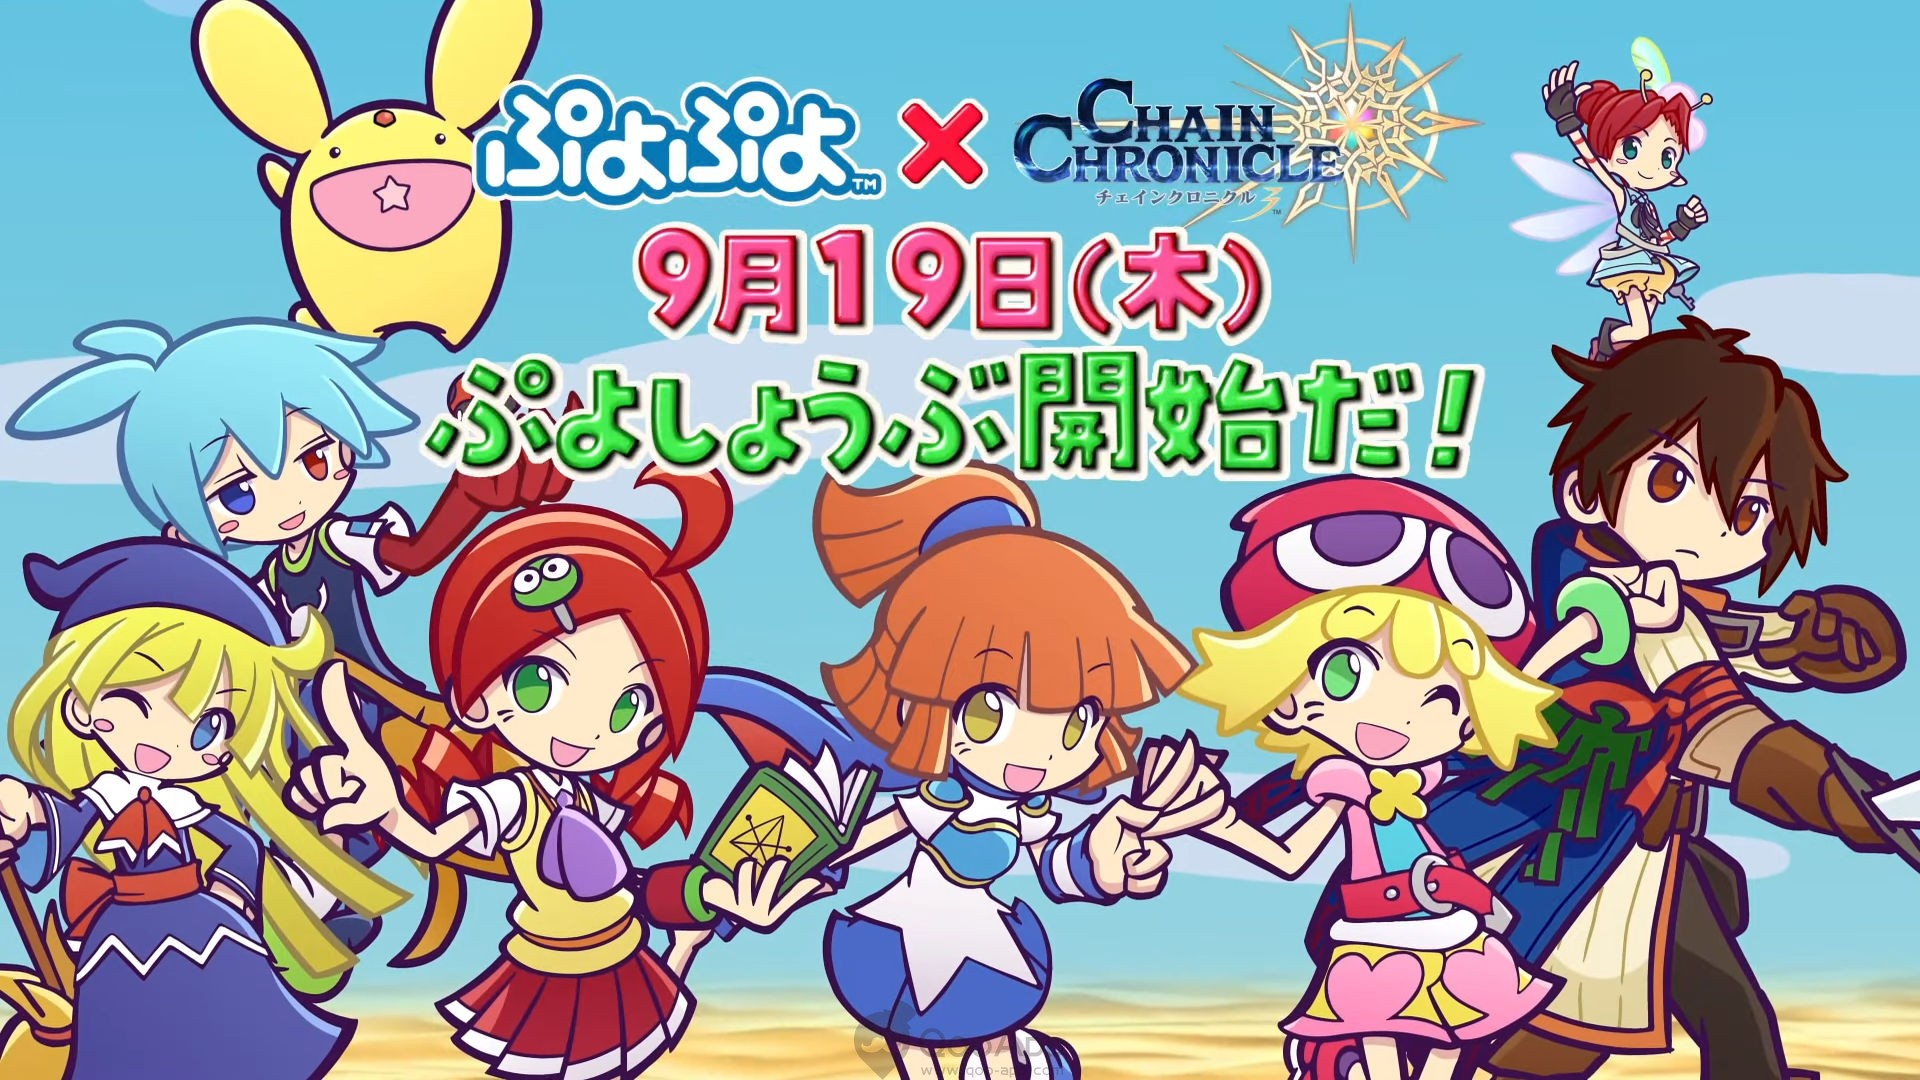 Chain Chronicle x Puyo Puyo Series Collaboration Starts Today!